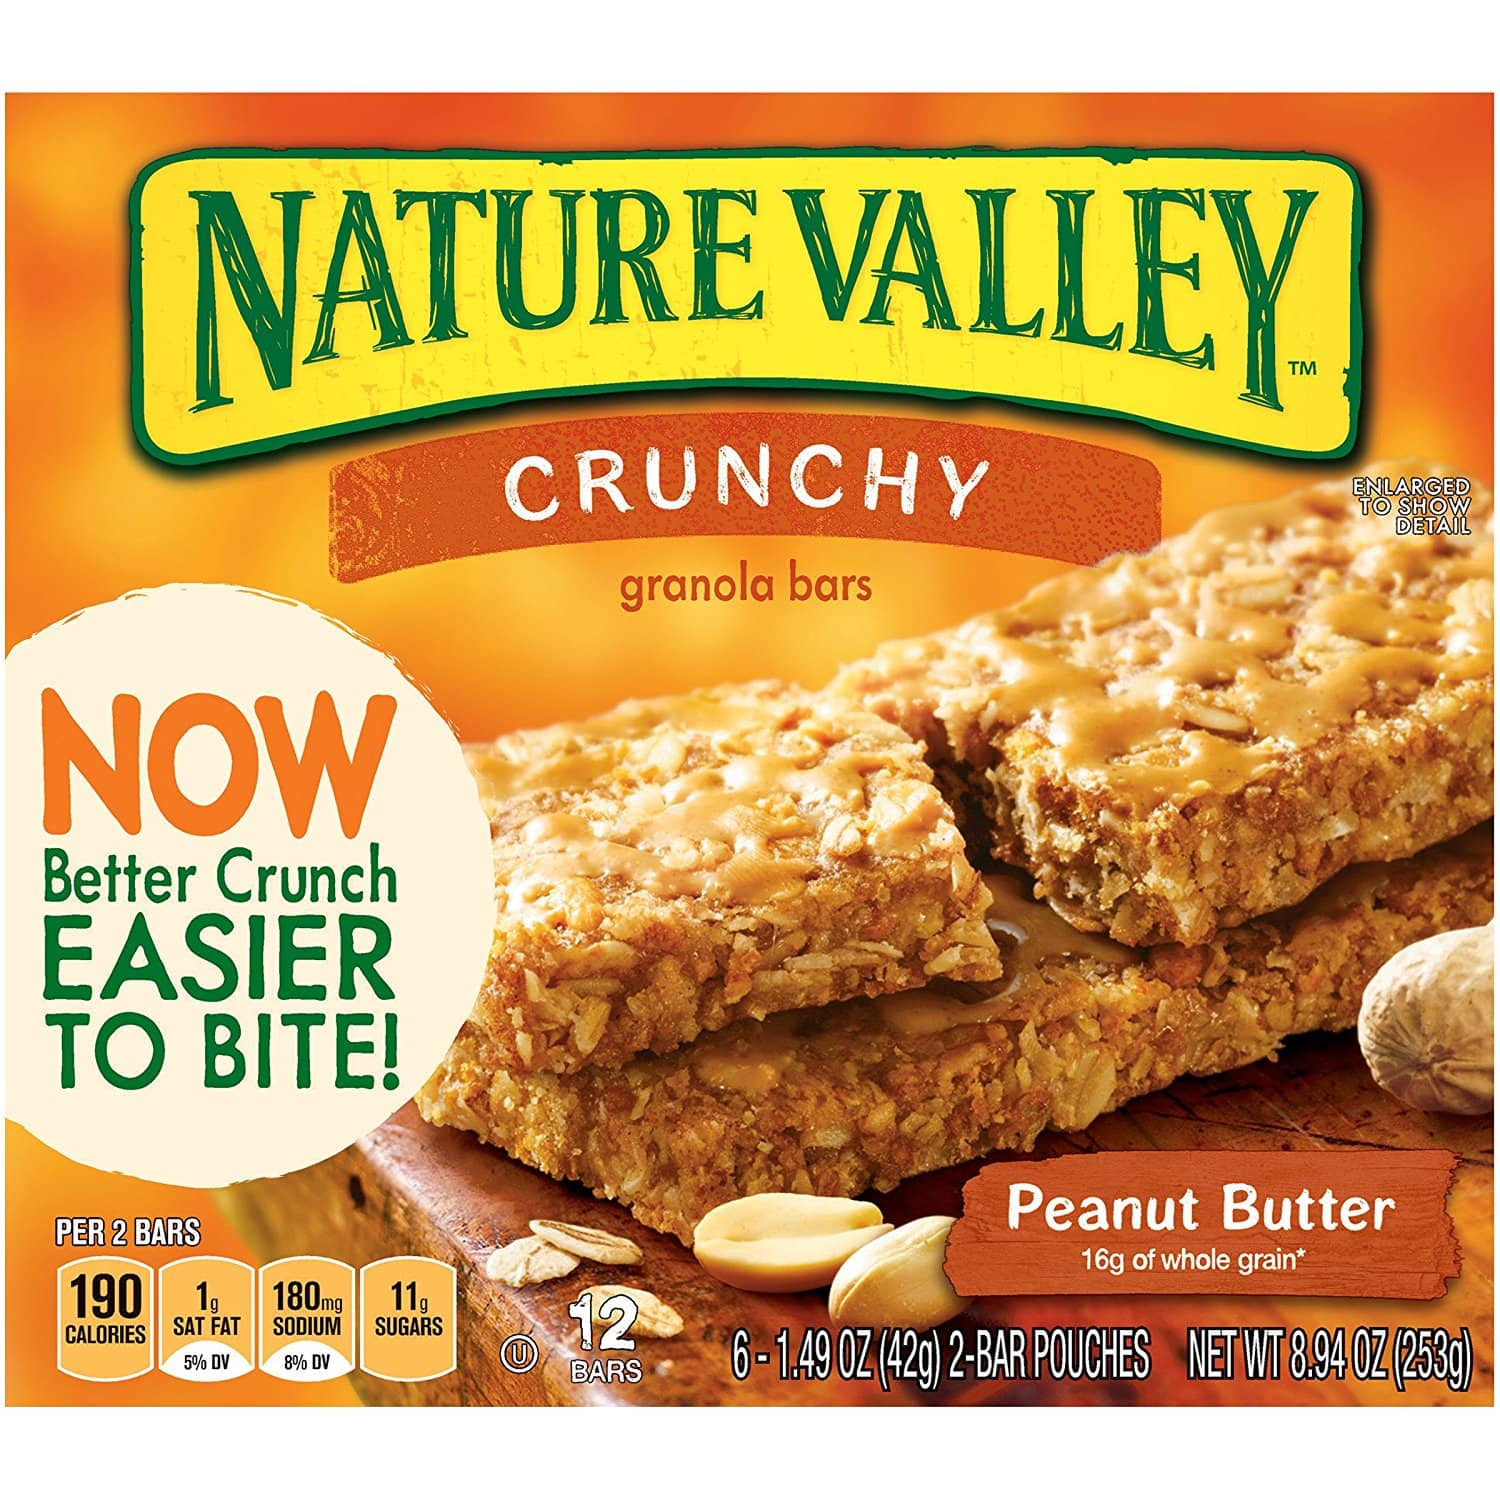 36-Count 1.49oz Nature Valley Crunchy Granola Bars (Oats & Dark Chocolate)  $9.60 + Free Shipping